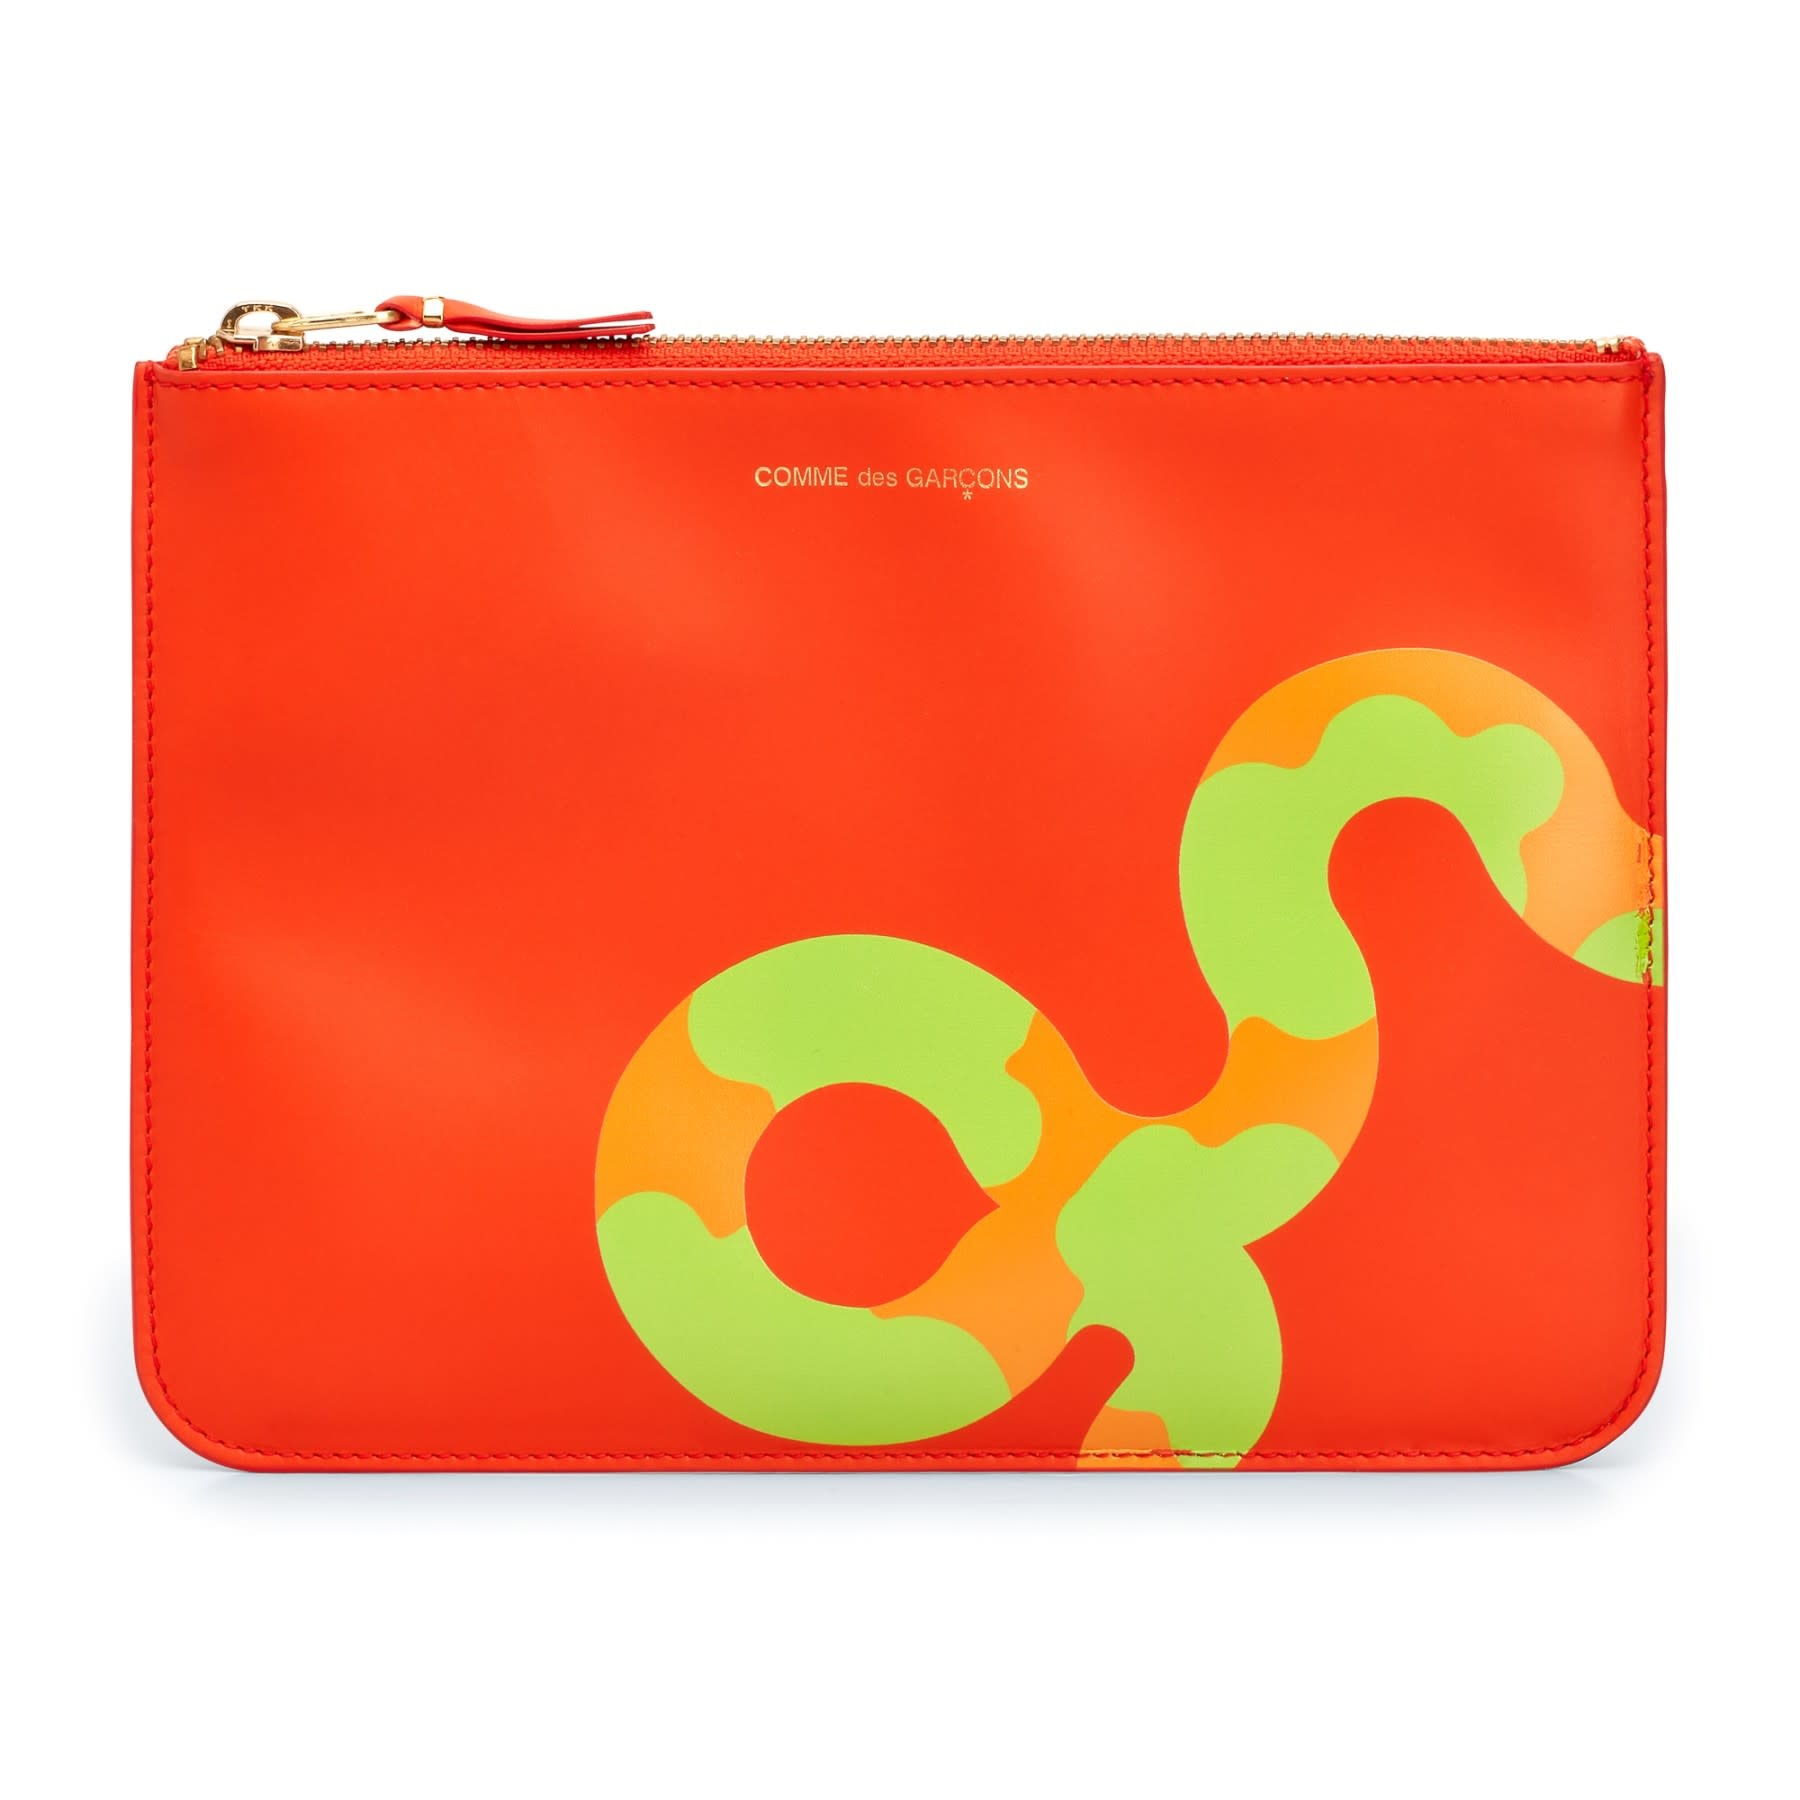 COMME des GARÇONS WALLET Large zip pouch in Orange Ruby Eyed Snake